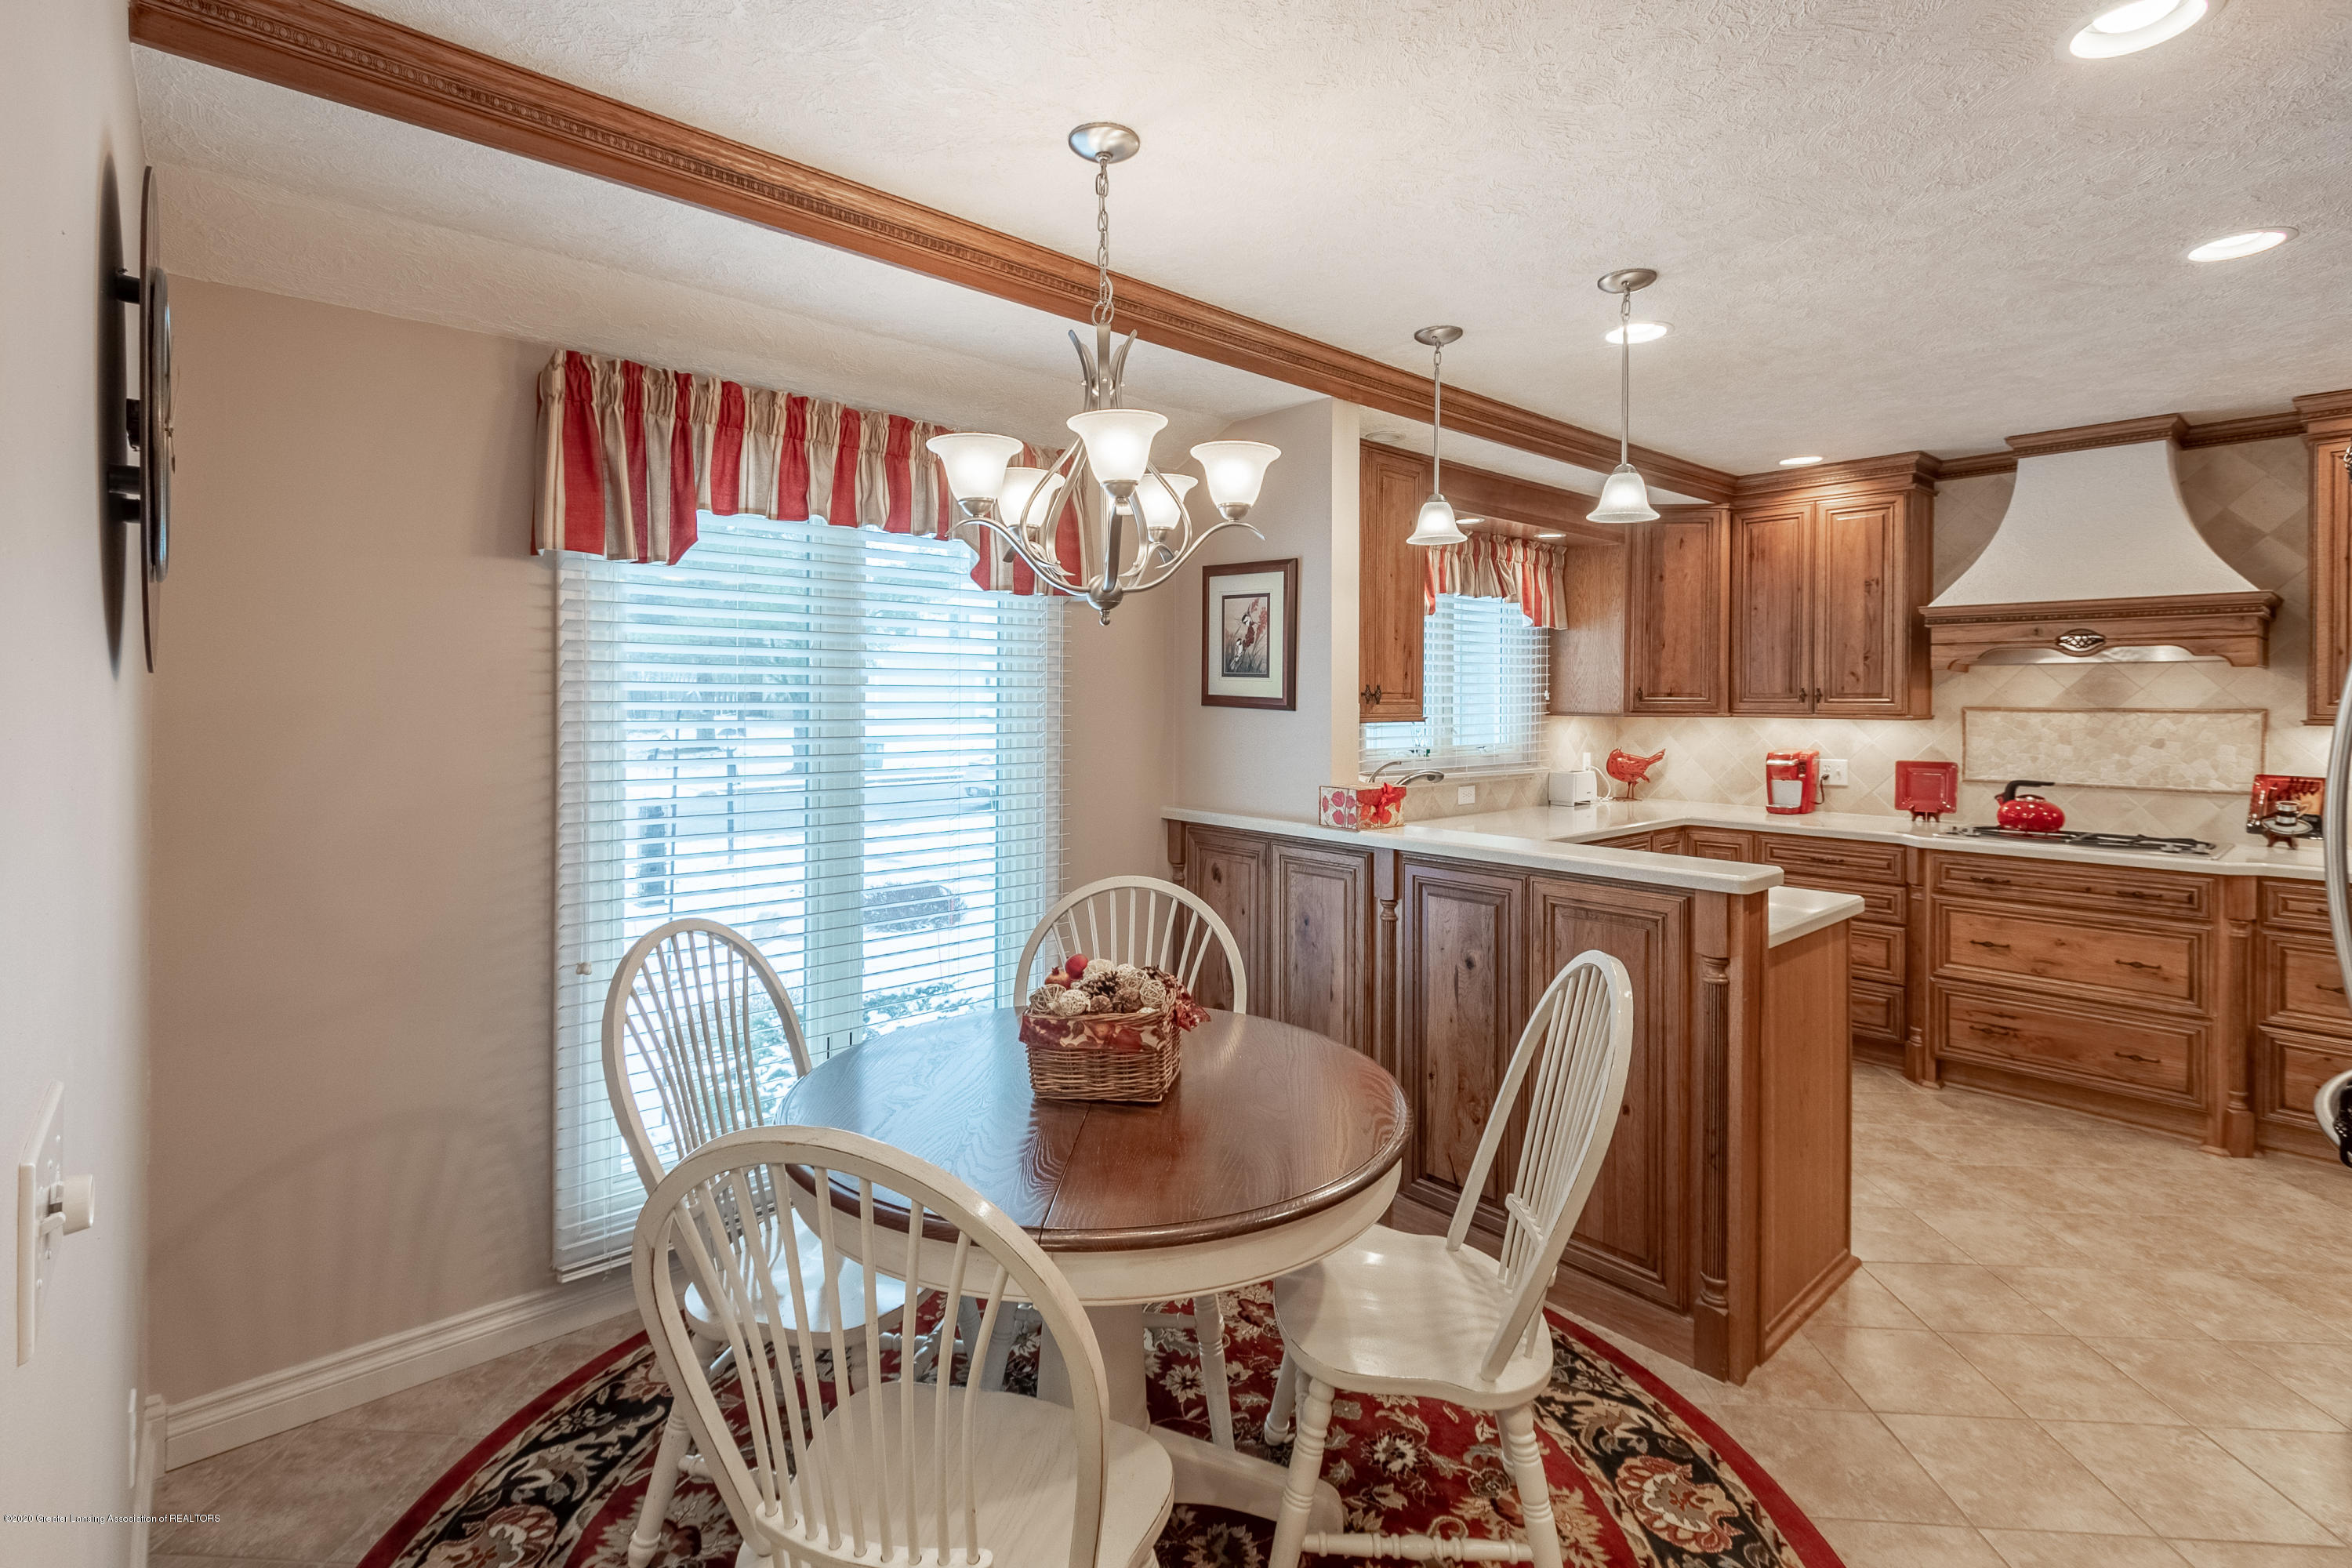 2060 Tamarack Dr - Kitchen and Dining Area - 12